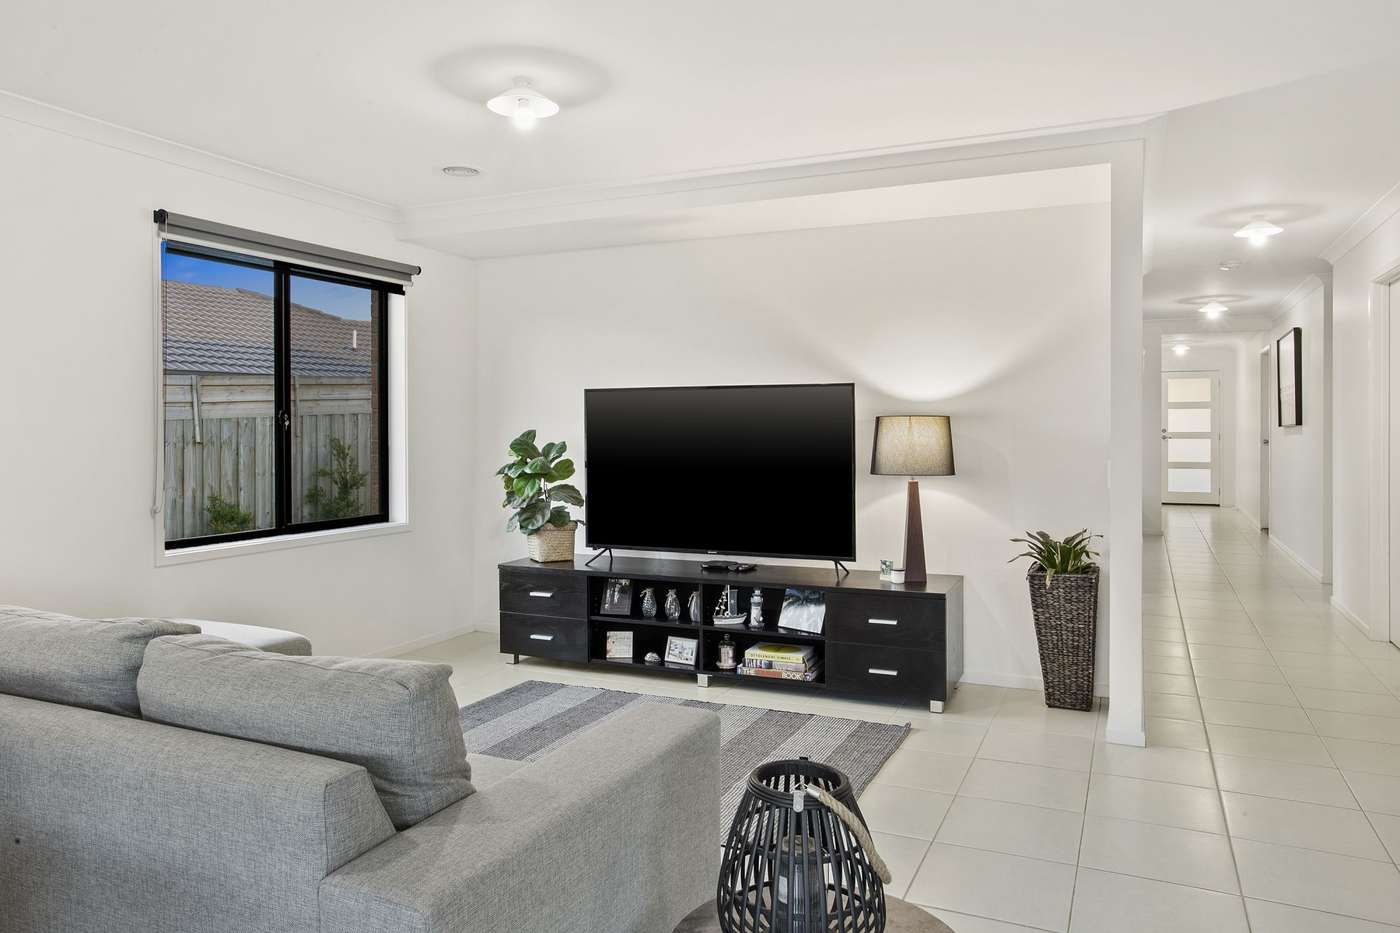 Main view of Homely house listing, 3 Heritage Mews, Drysdale, VIC 3222